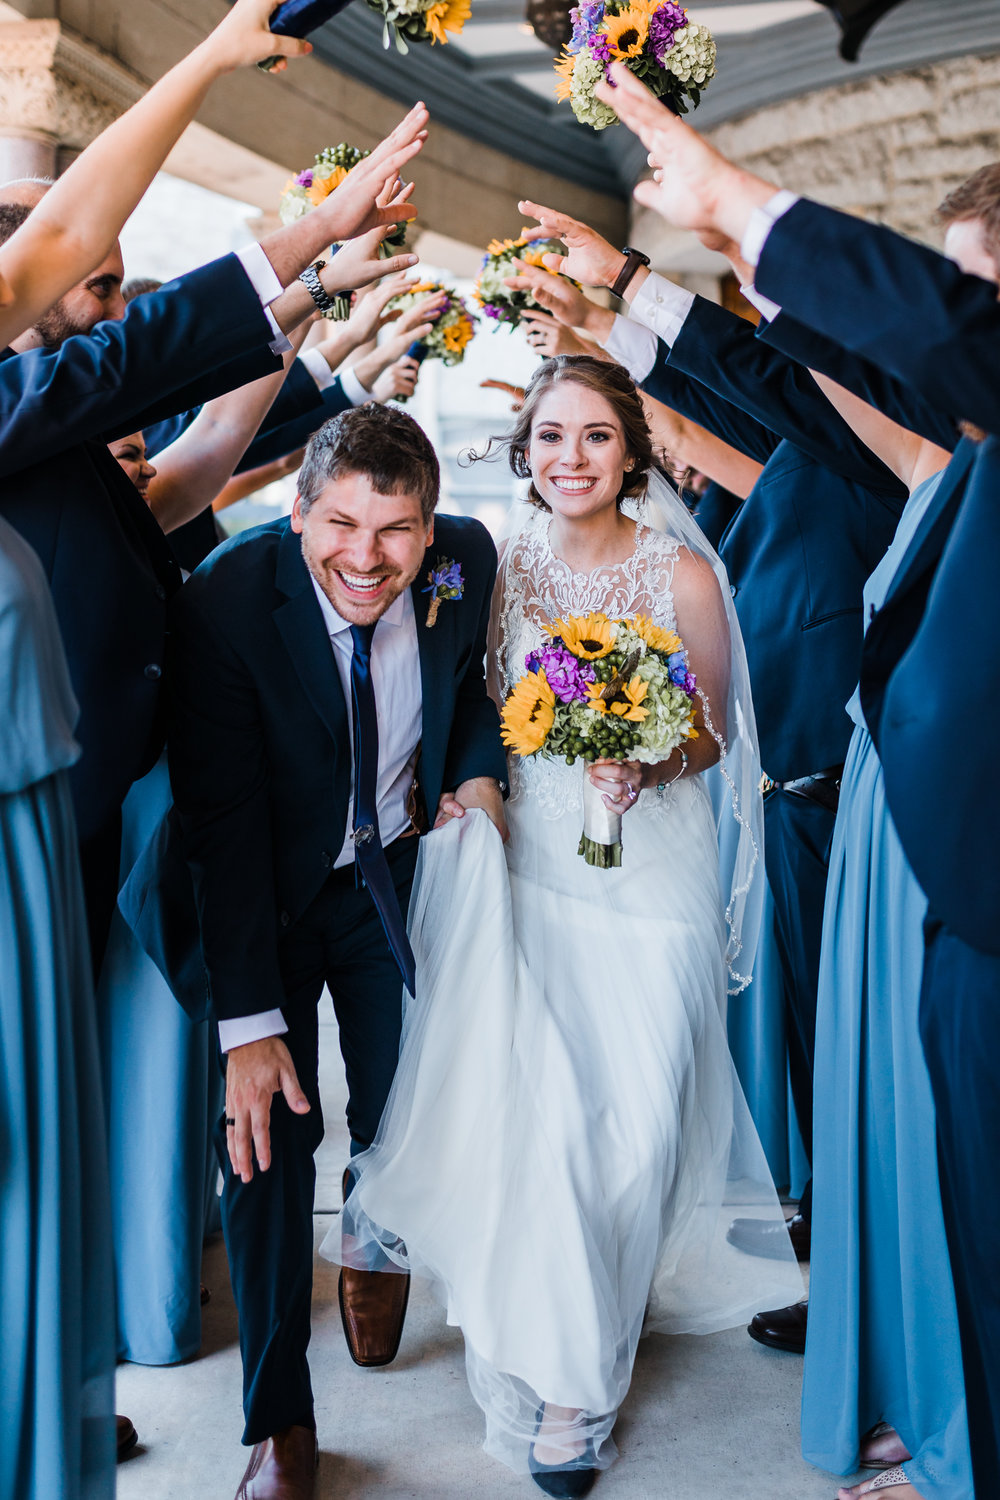 bridal party photo ideas - blue weddings - real weddings in baltimore maryland